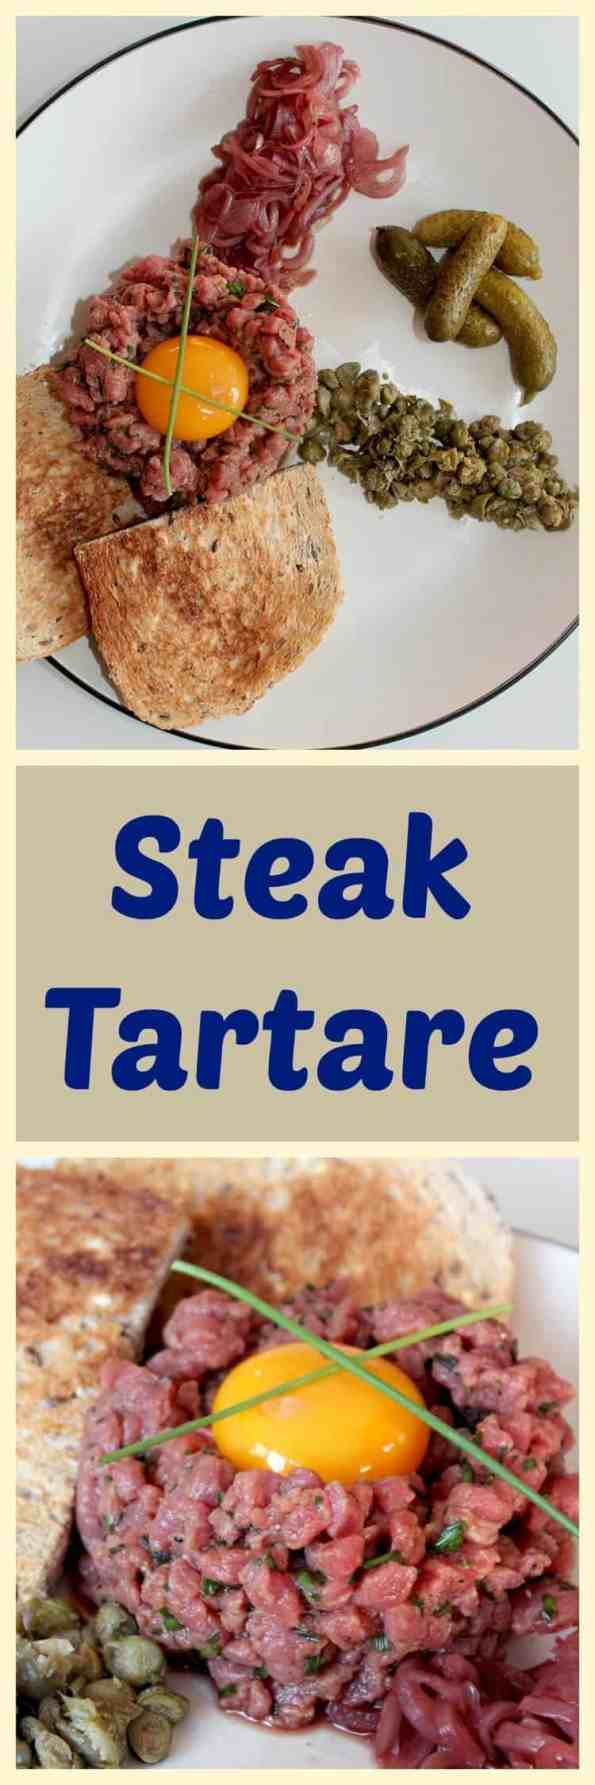 home meade steak tartare is much easier than you think. get that restaurant taste at home!